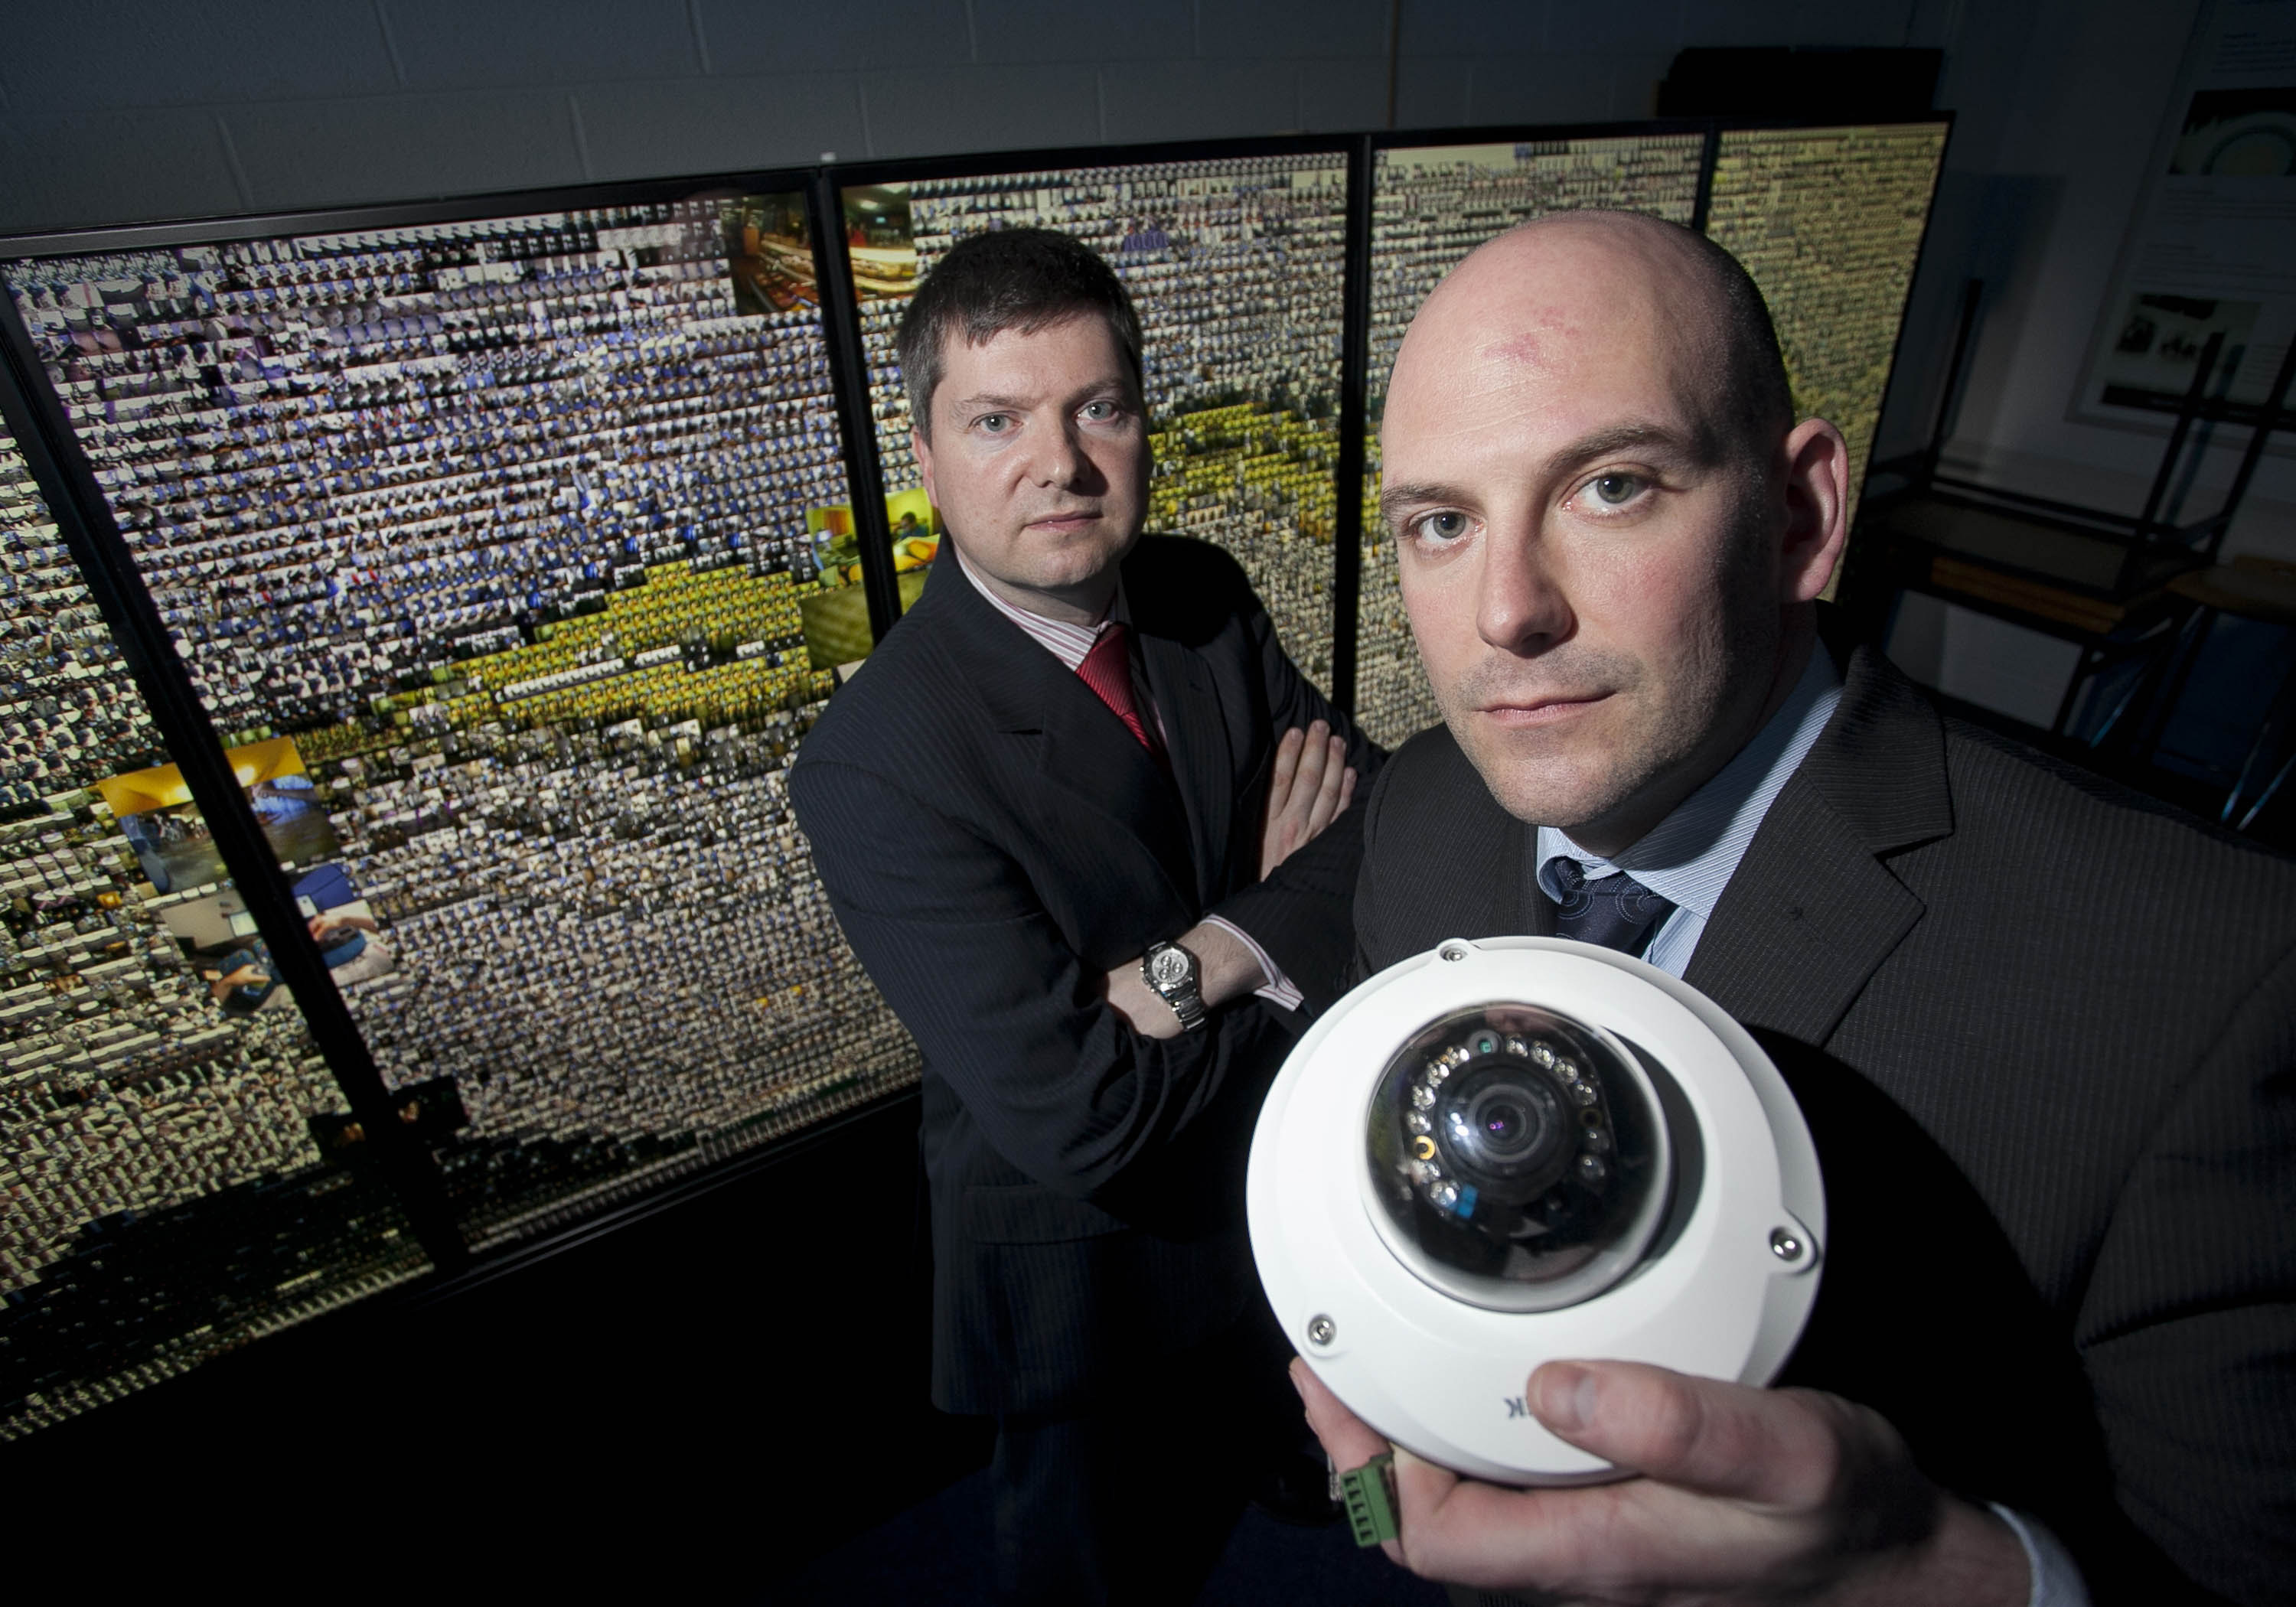 Niall Dorr, Innovation Manager at Netwatch and Professor Noel O'Connor, a Principal Investigator in CLARITY